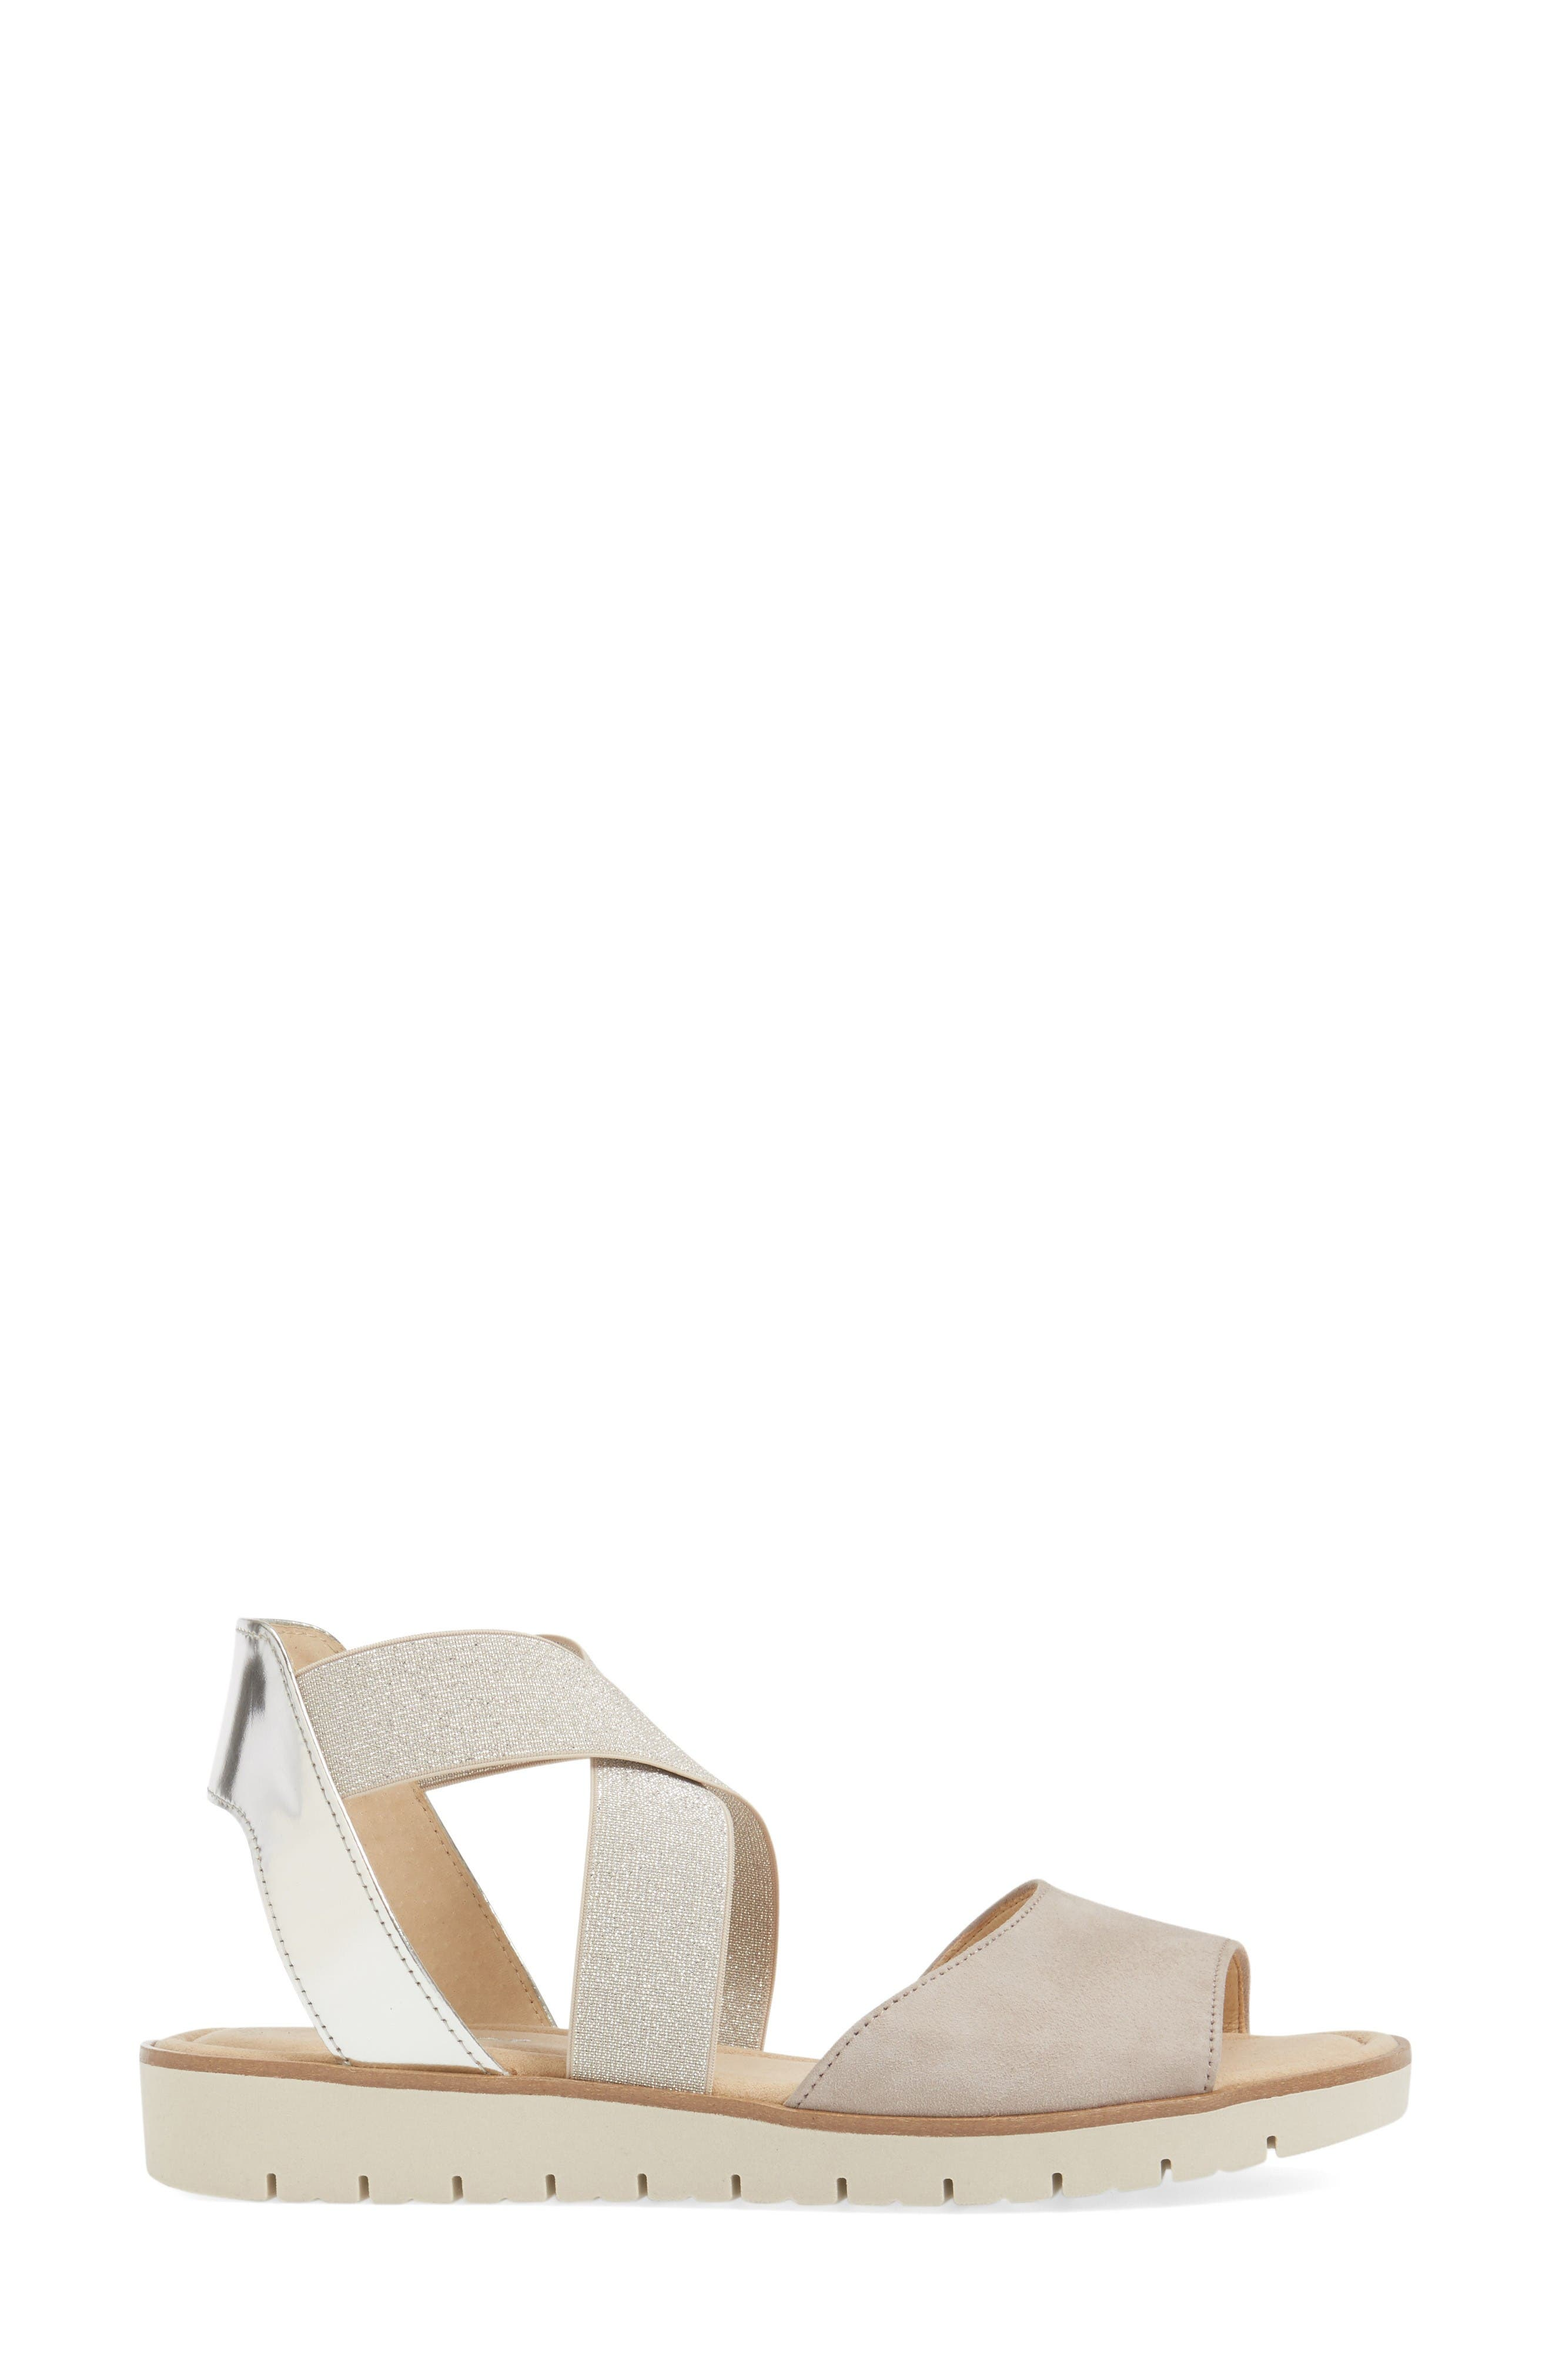 Strappy Sandal,                             Alternate thumbnail 3, color,                             Beige Leather